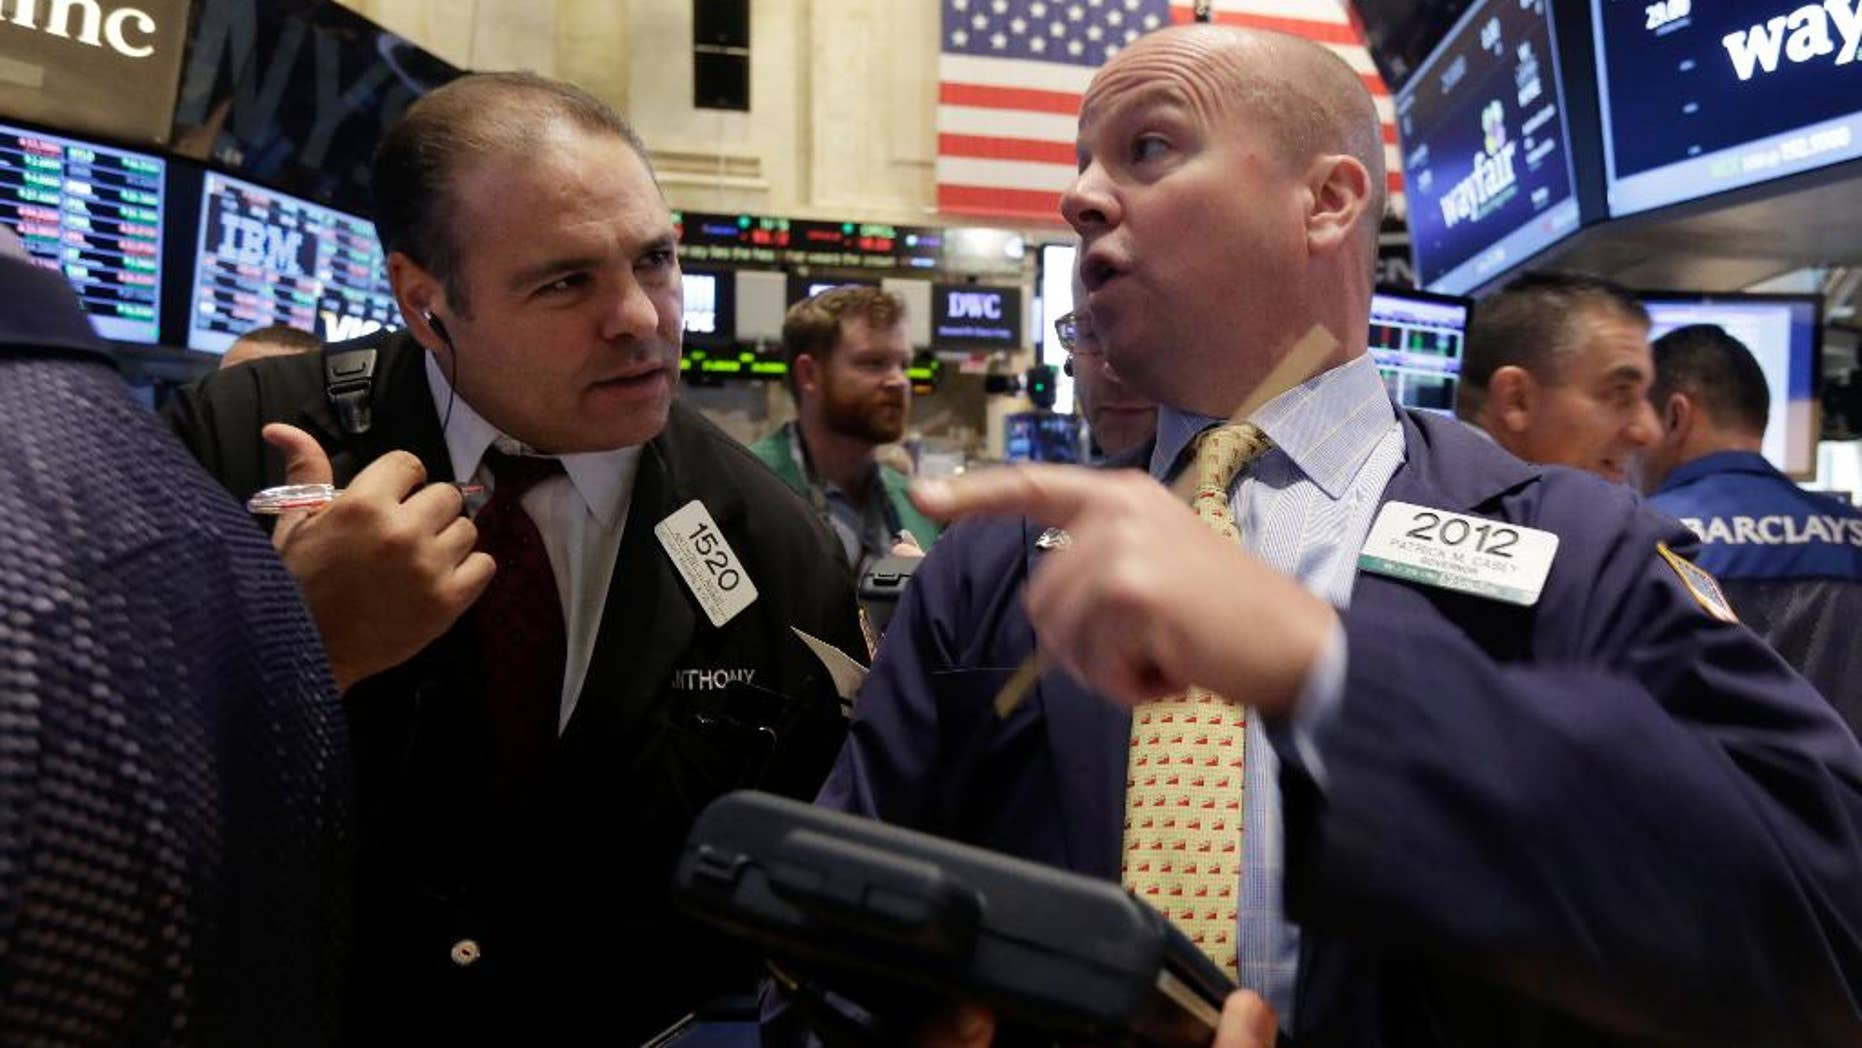 Traders Anthony Riccio, left, and Patrick Casey work on the floor of the New York Stock Exchange, Thursday, Oct. 2, 2014. U.S. markets were mostly flat in early trading Thursday, follow a sell-off the day before, as U.S. investors had little reaction to comments from European Central Bank President Mario Draghi, who announced new economic stimulus measures for the continent. (AP Photo/Richard Drew)